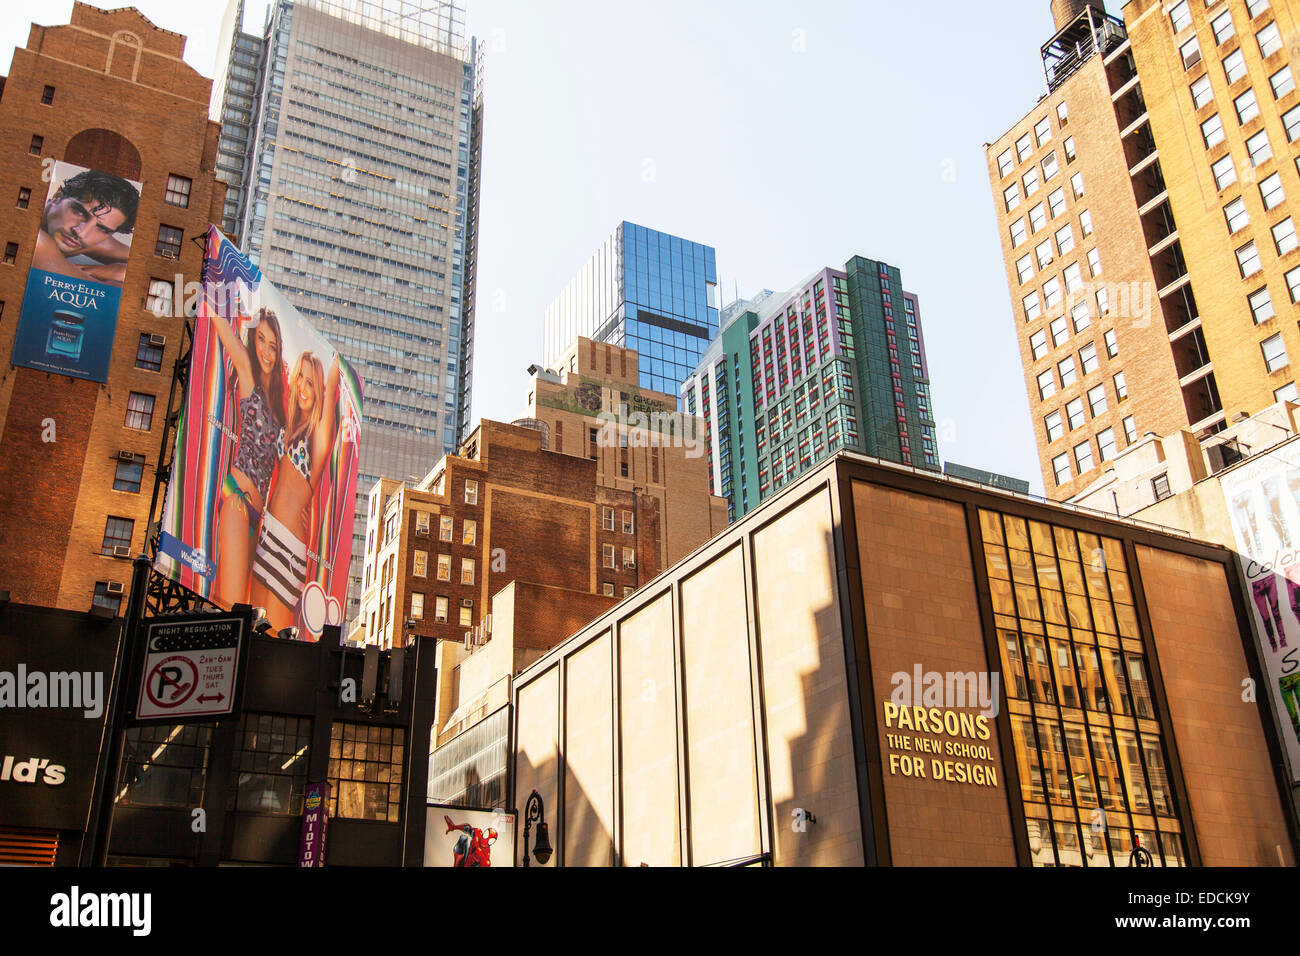 parsons the new school for design, new york city, usa stock photo